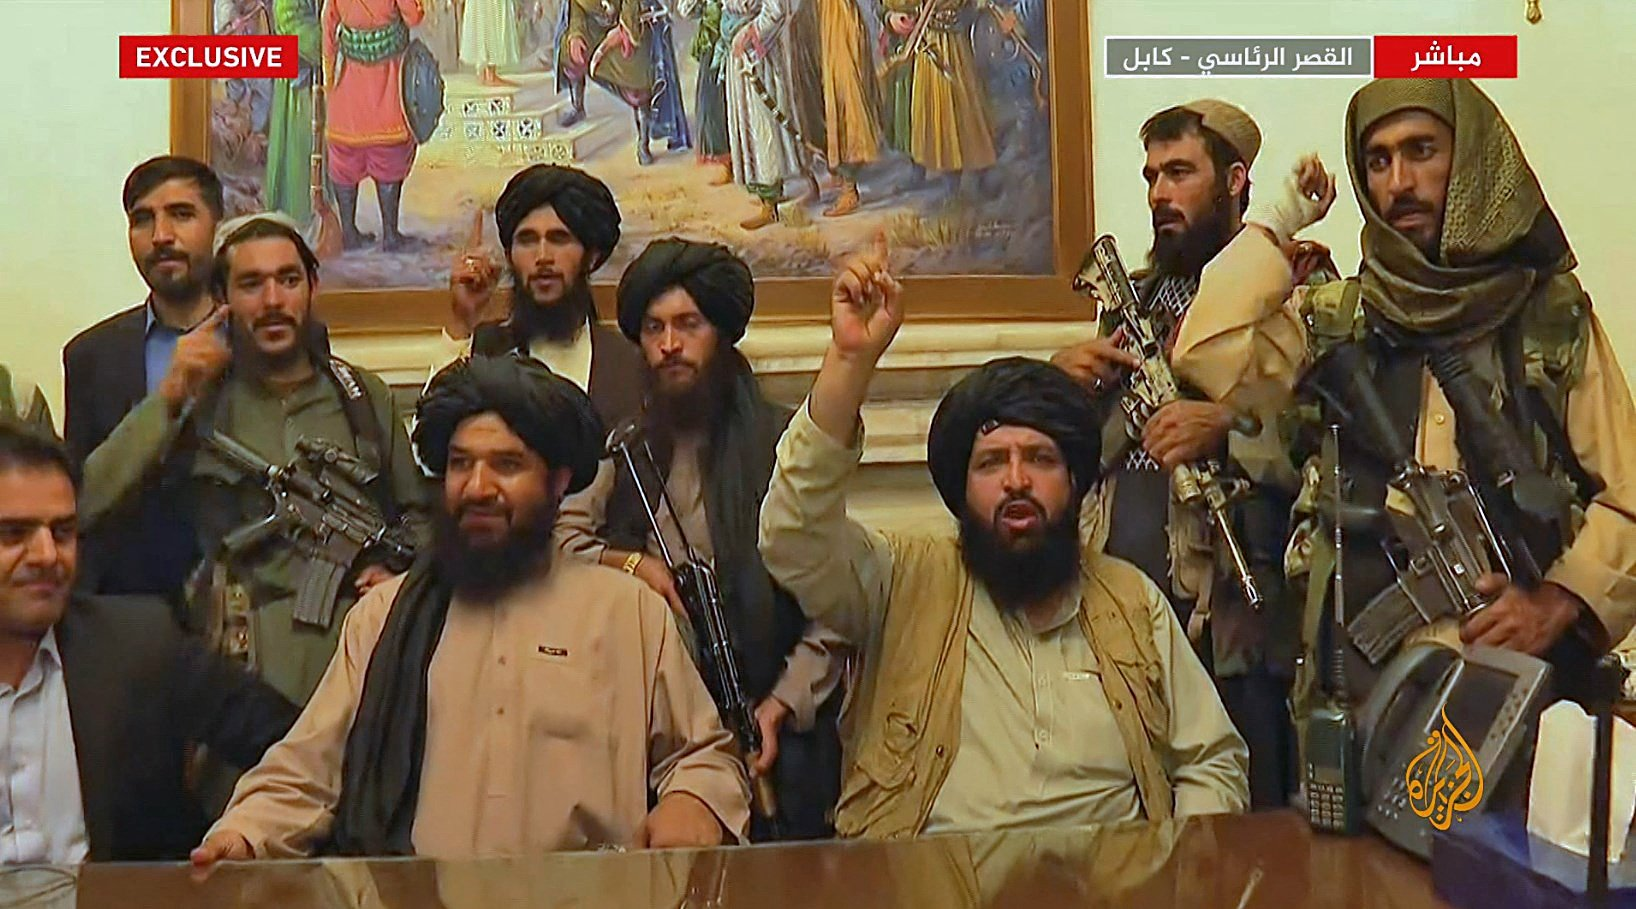 An image grab taken from Qatar-based Al-Jazeera television on Aug. 16, 2021, shows members of the Taliban taking control of the presidential palace in Kabul after Afghanistan's president flew out of the country. (AFP Photo/HO/Al Jazeera)